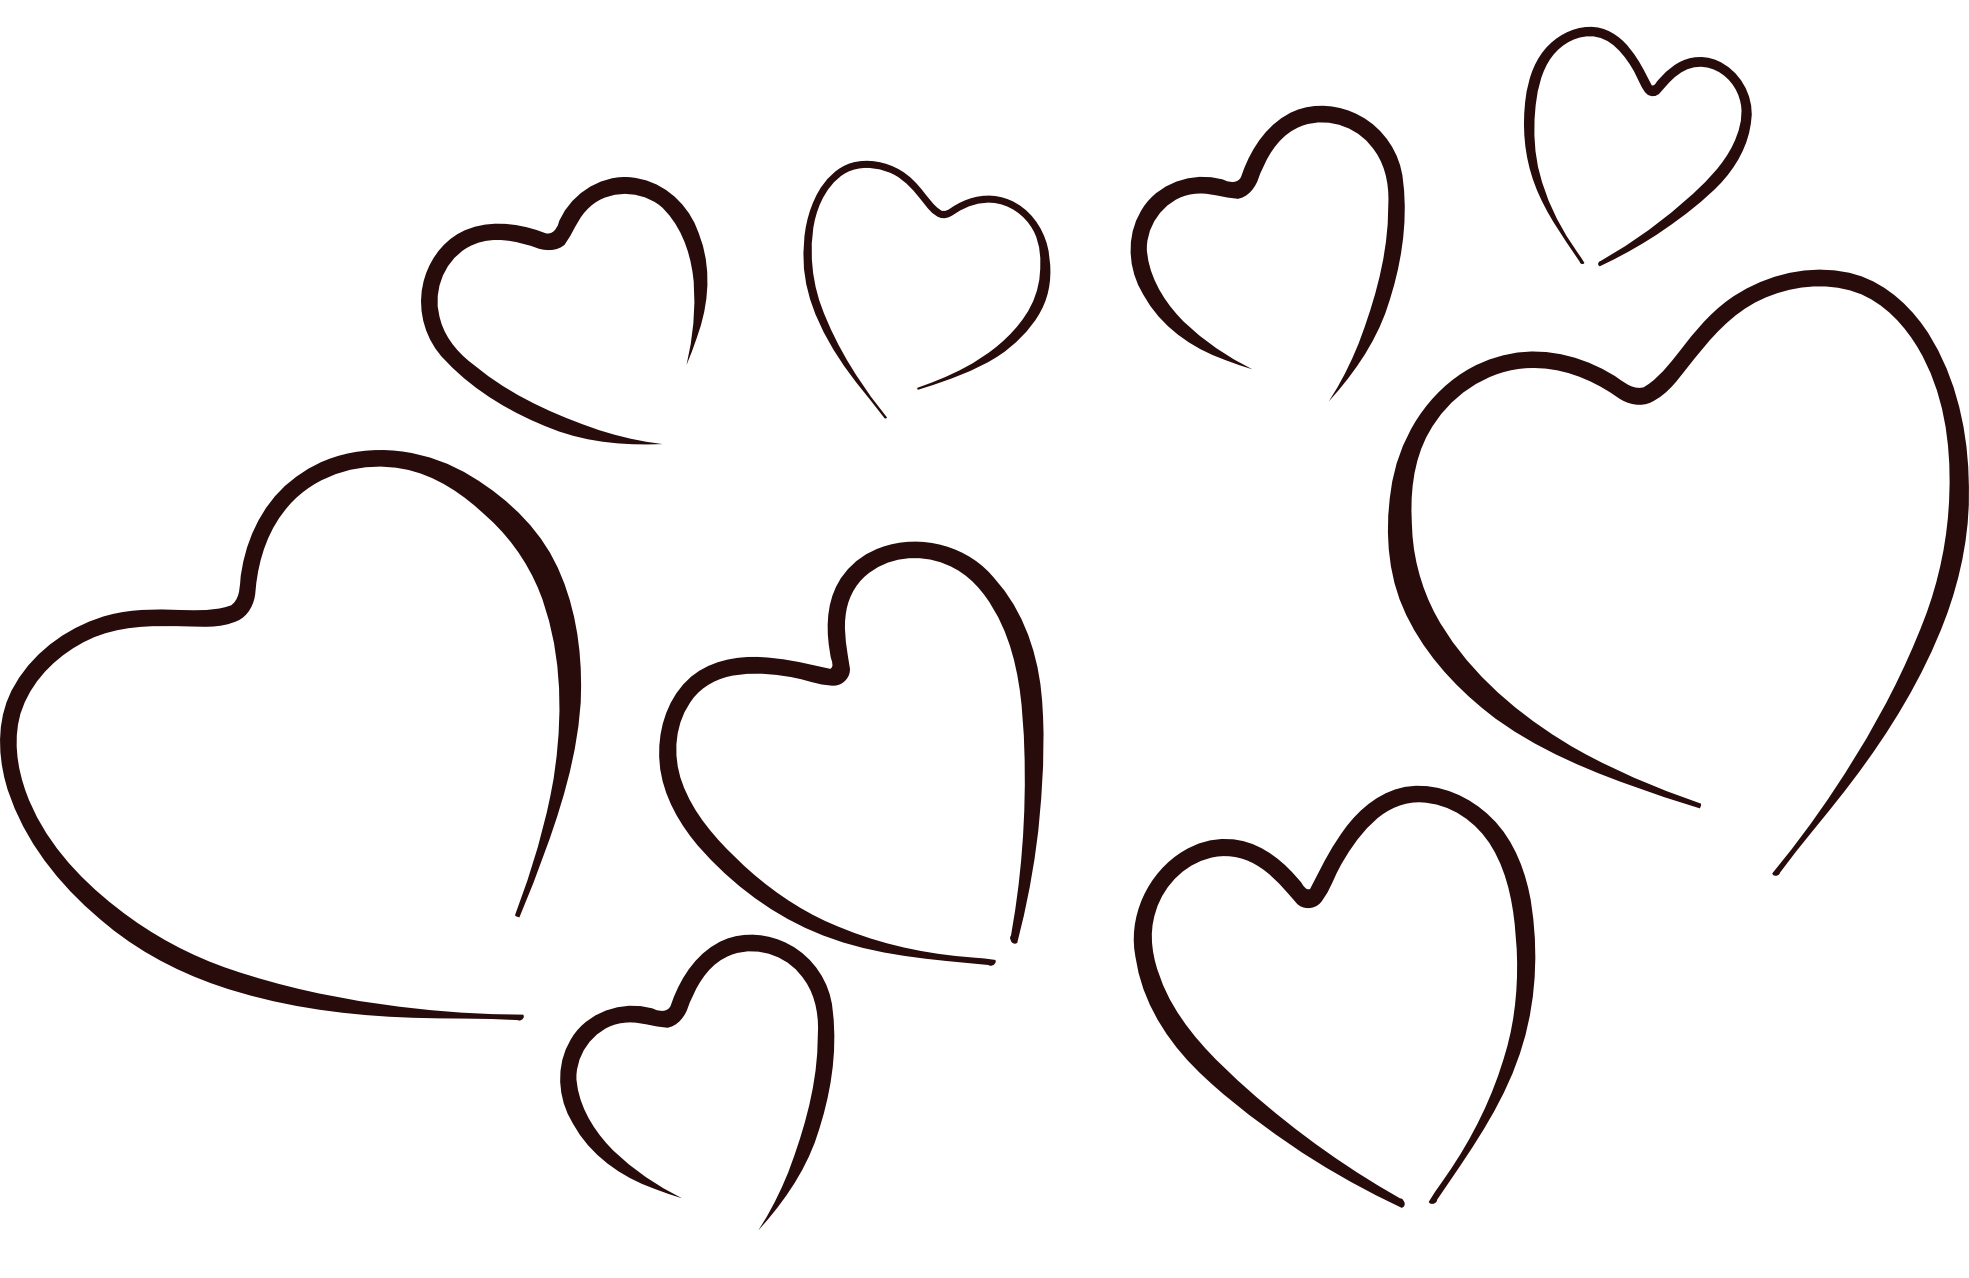 Double heart clipart black and white clip royalty free stock White Heart Clipart & White Heart Clip Art Images - ClipartALL.com clip royalty free stock